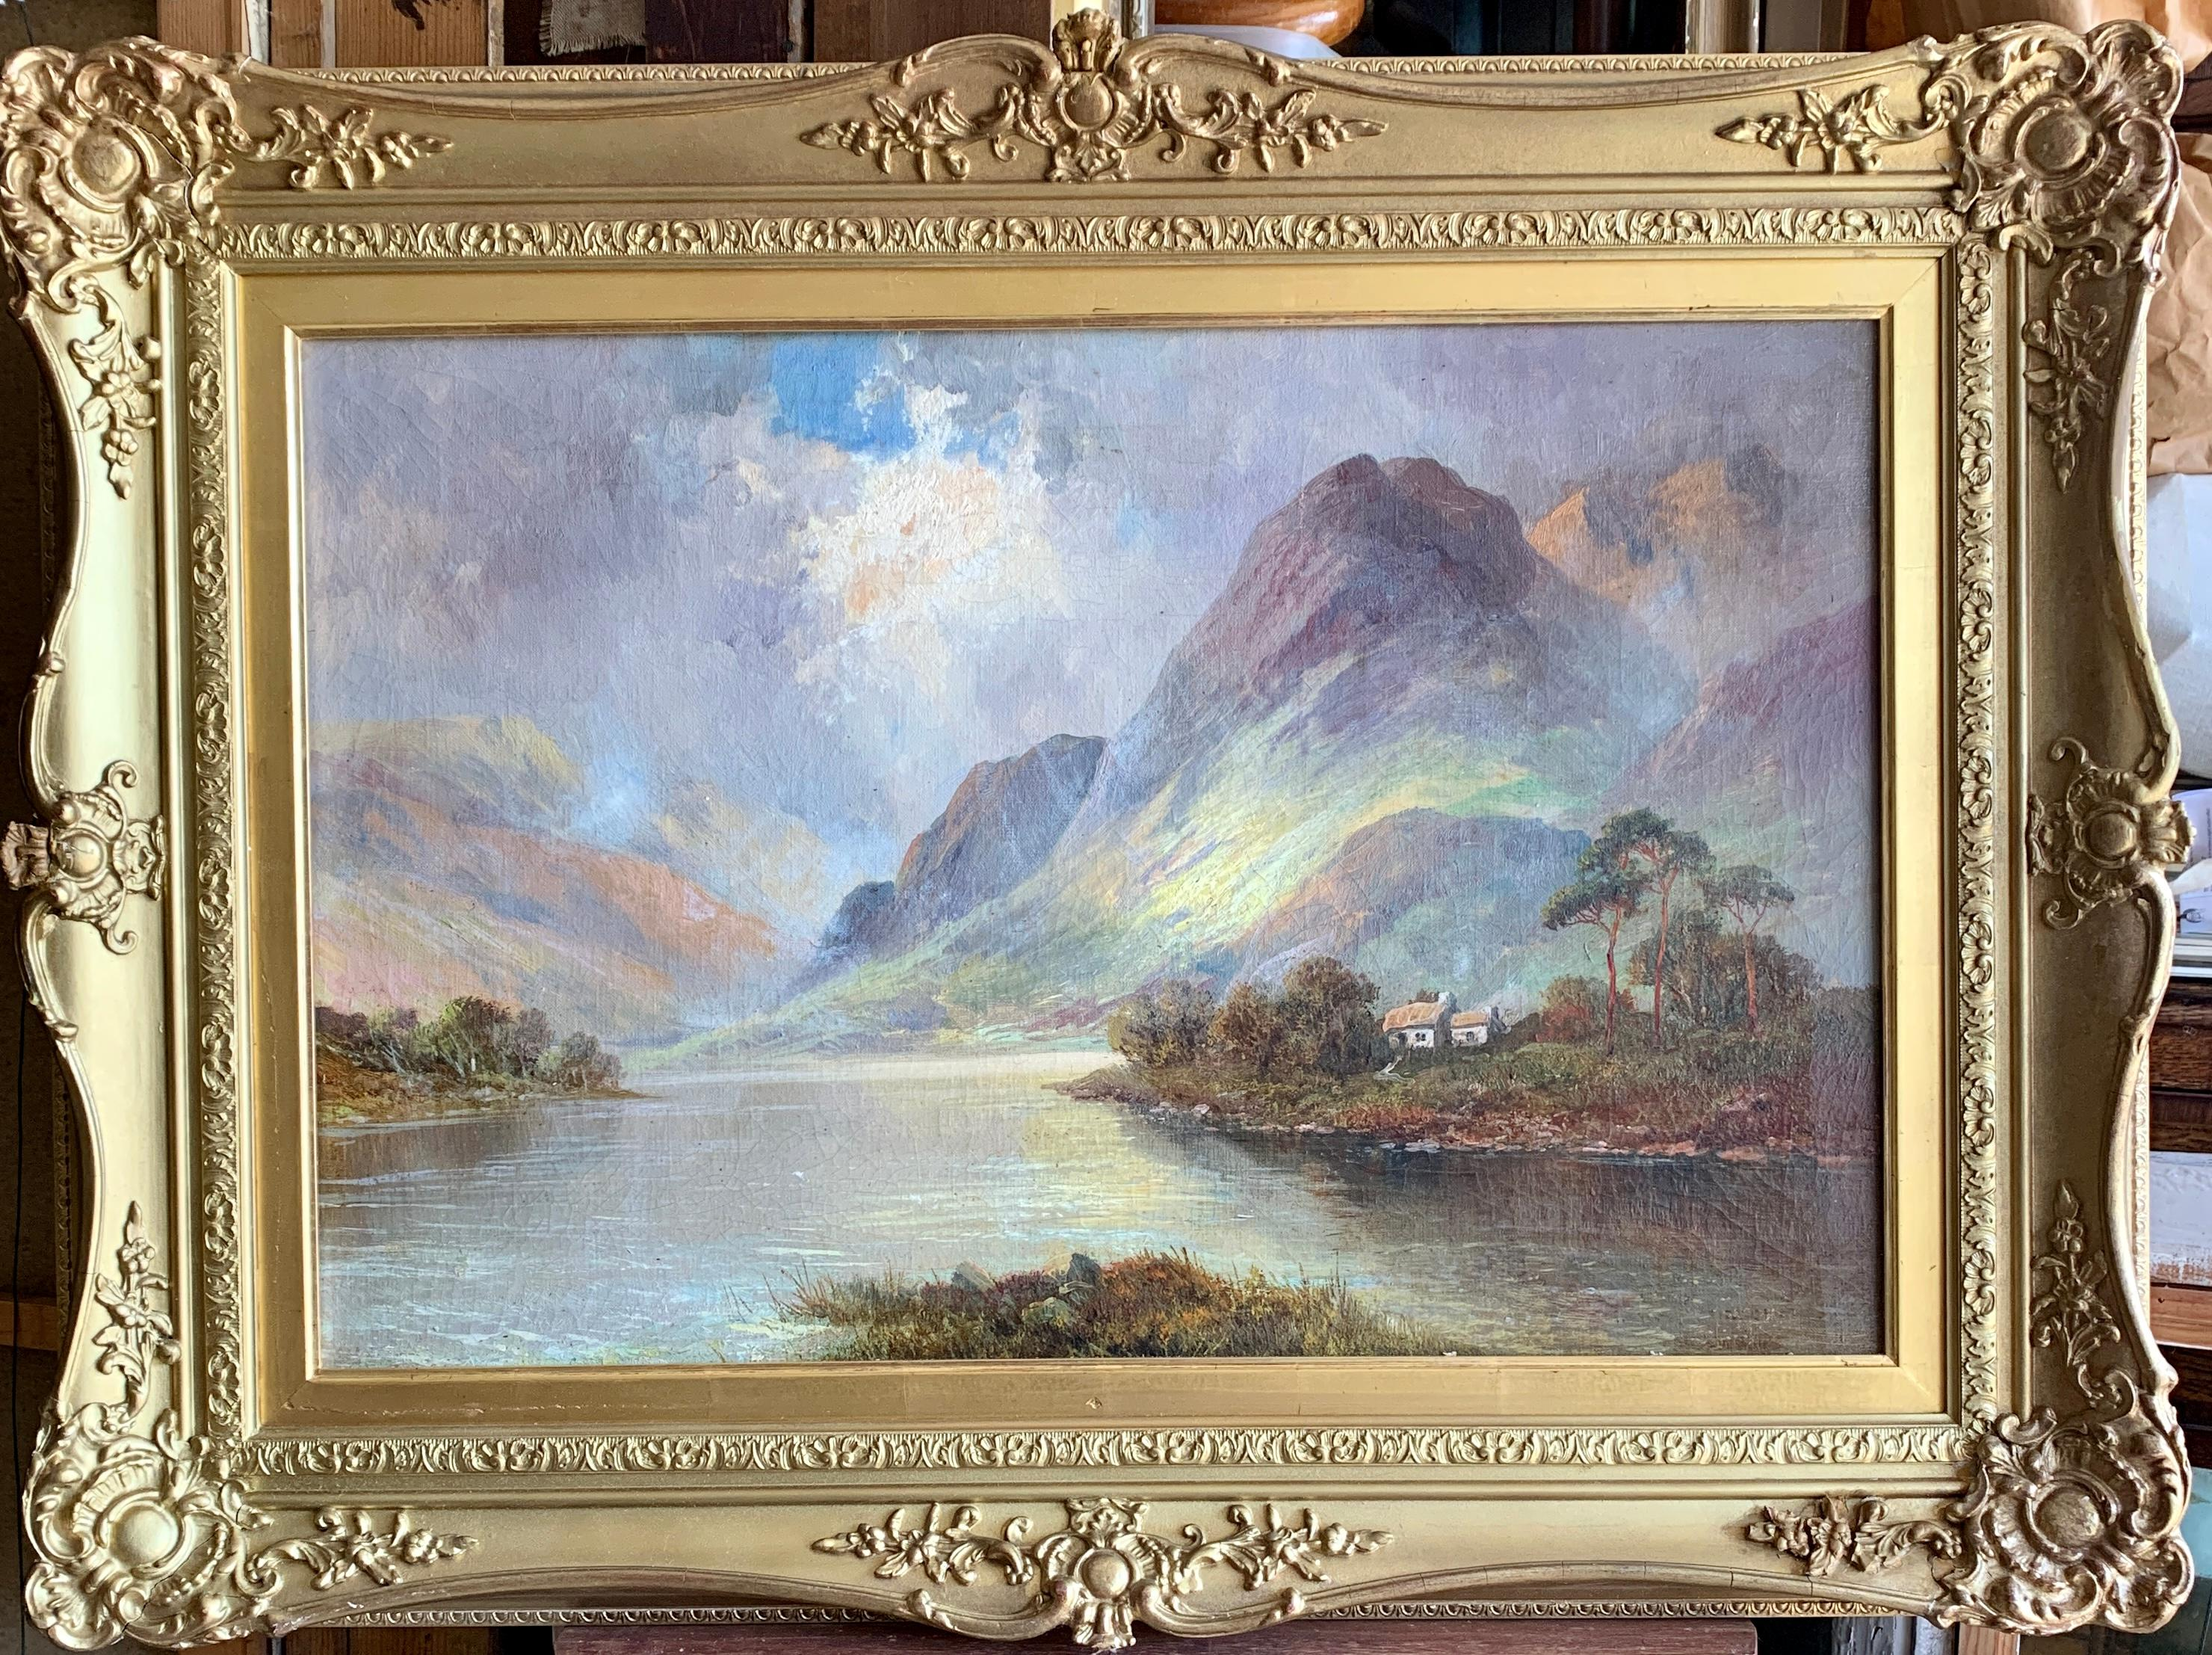 Antique Scottish Highland Loch landscape, with sunlit streaming onto the water